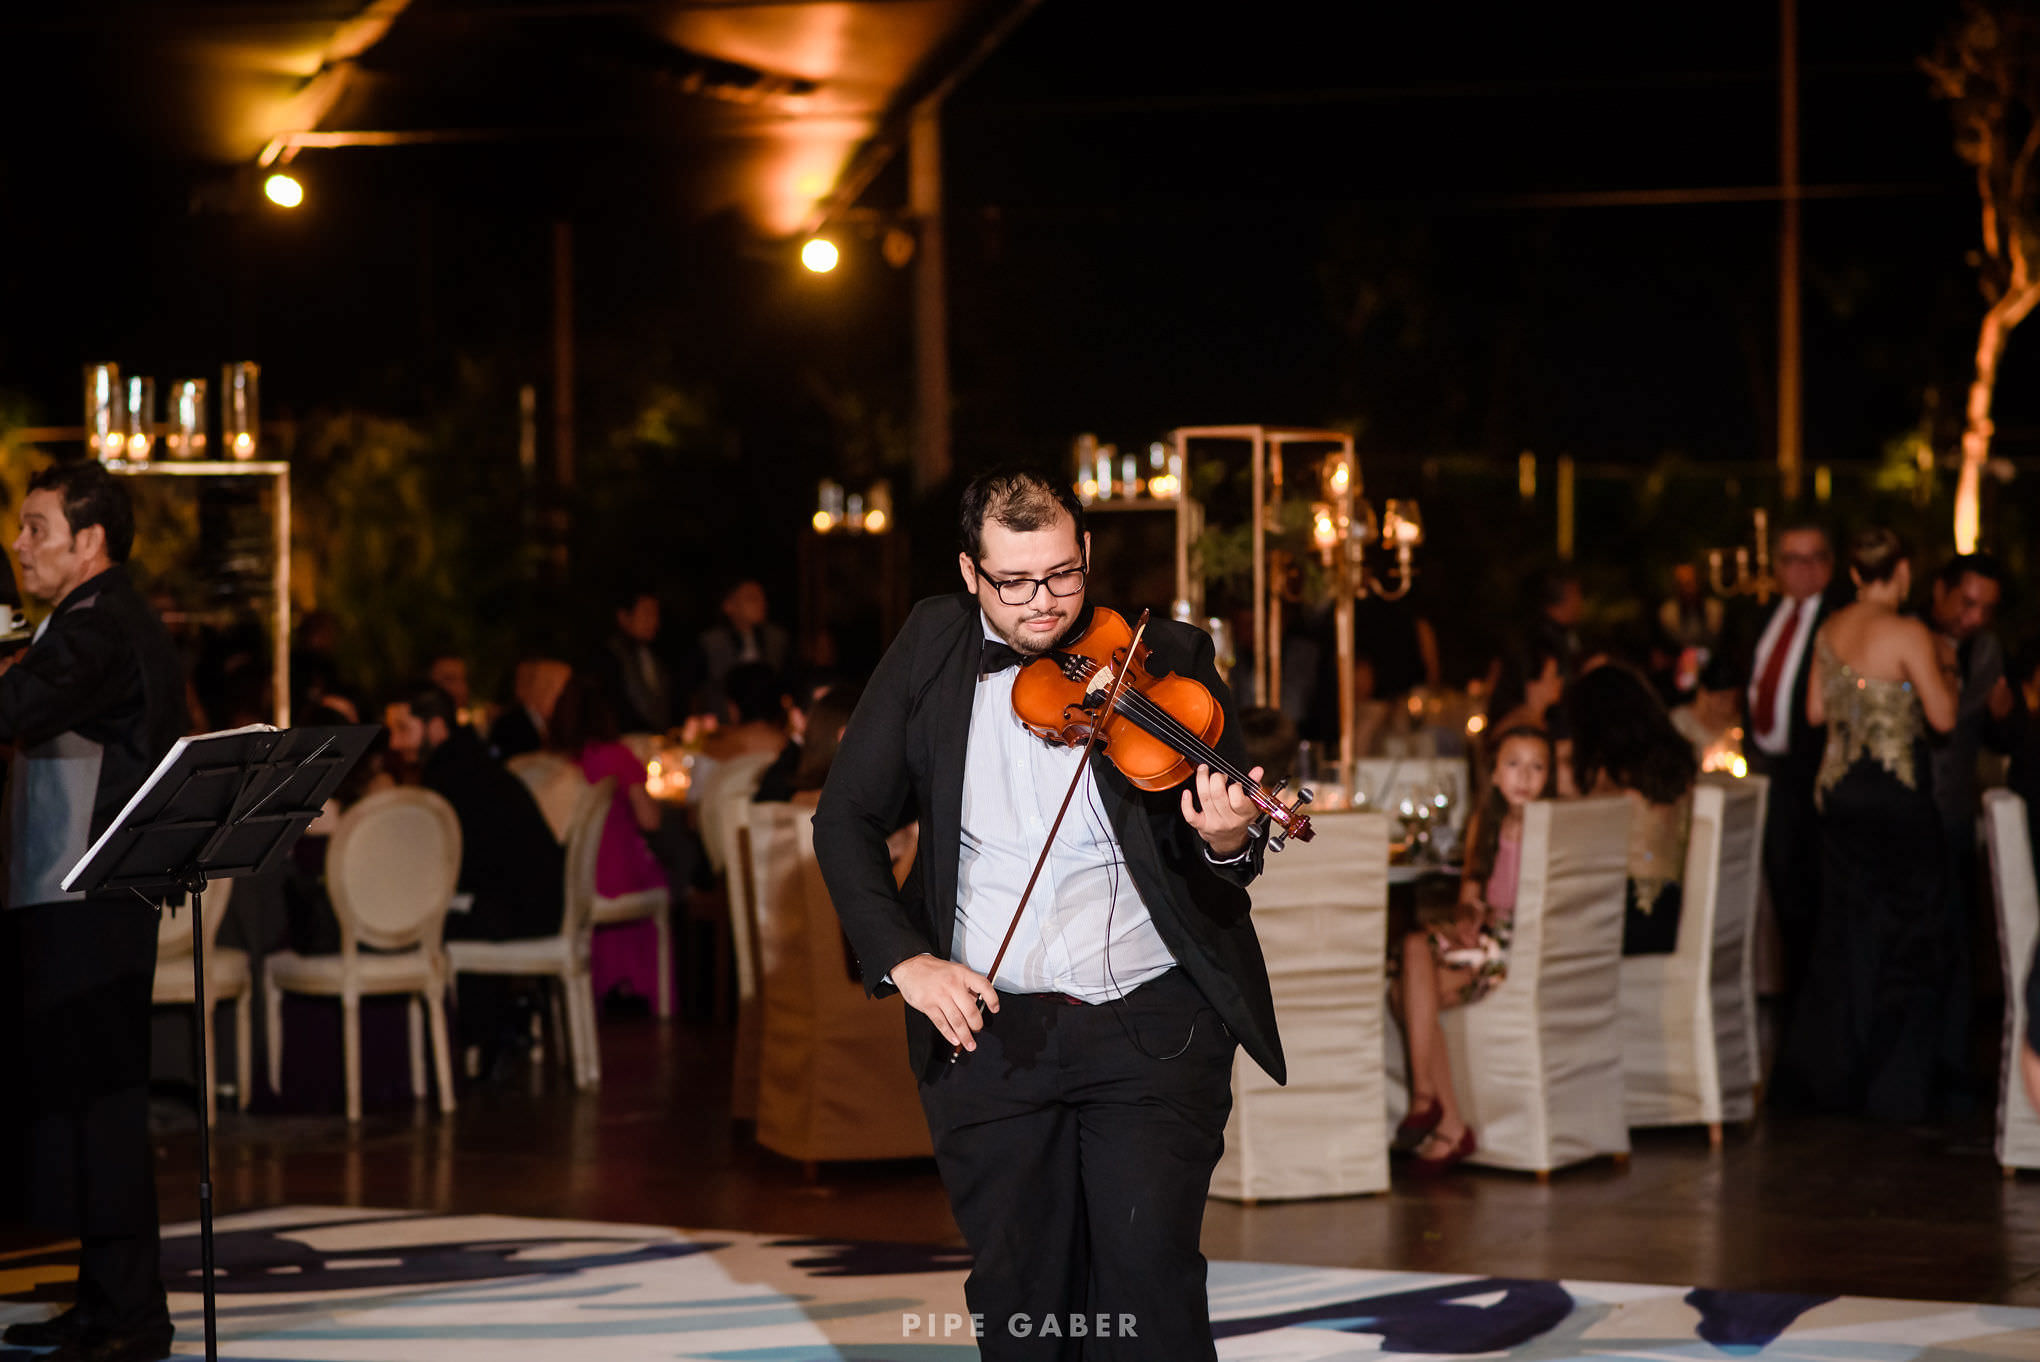 BODA_MUSICA_CLASICA_TIPS_FOR_BRIDES06.JPG